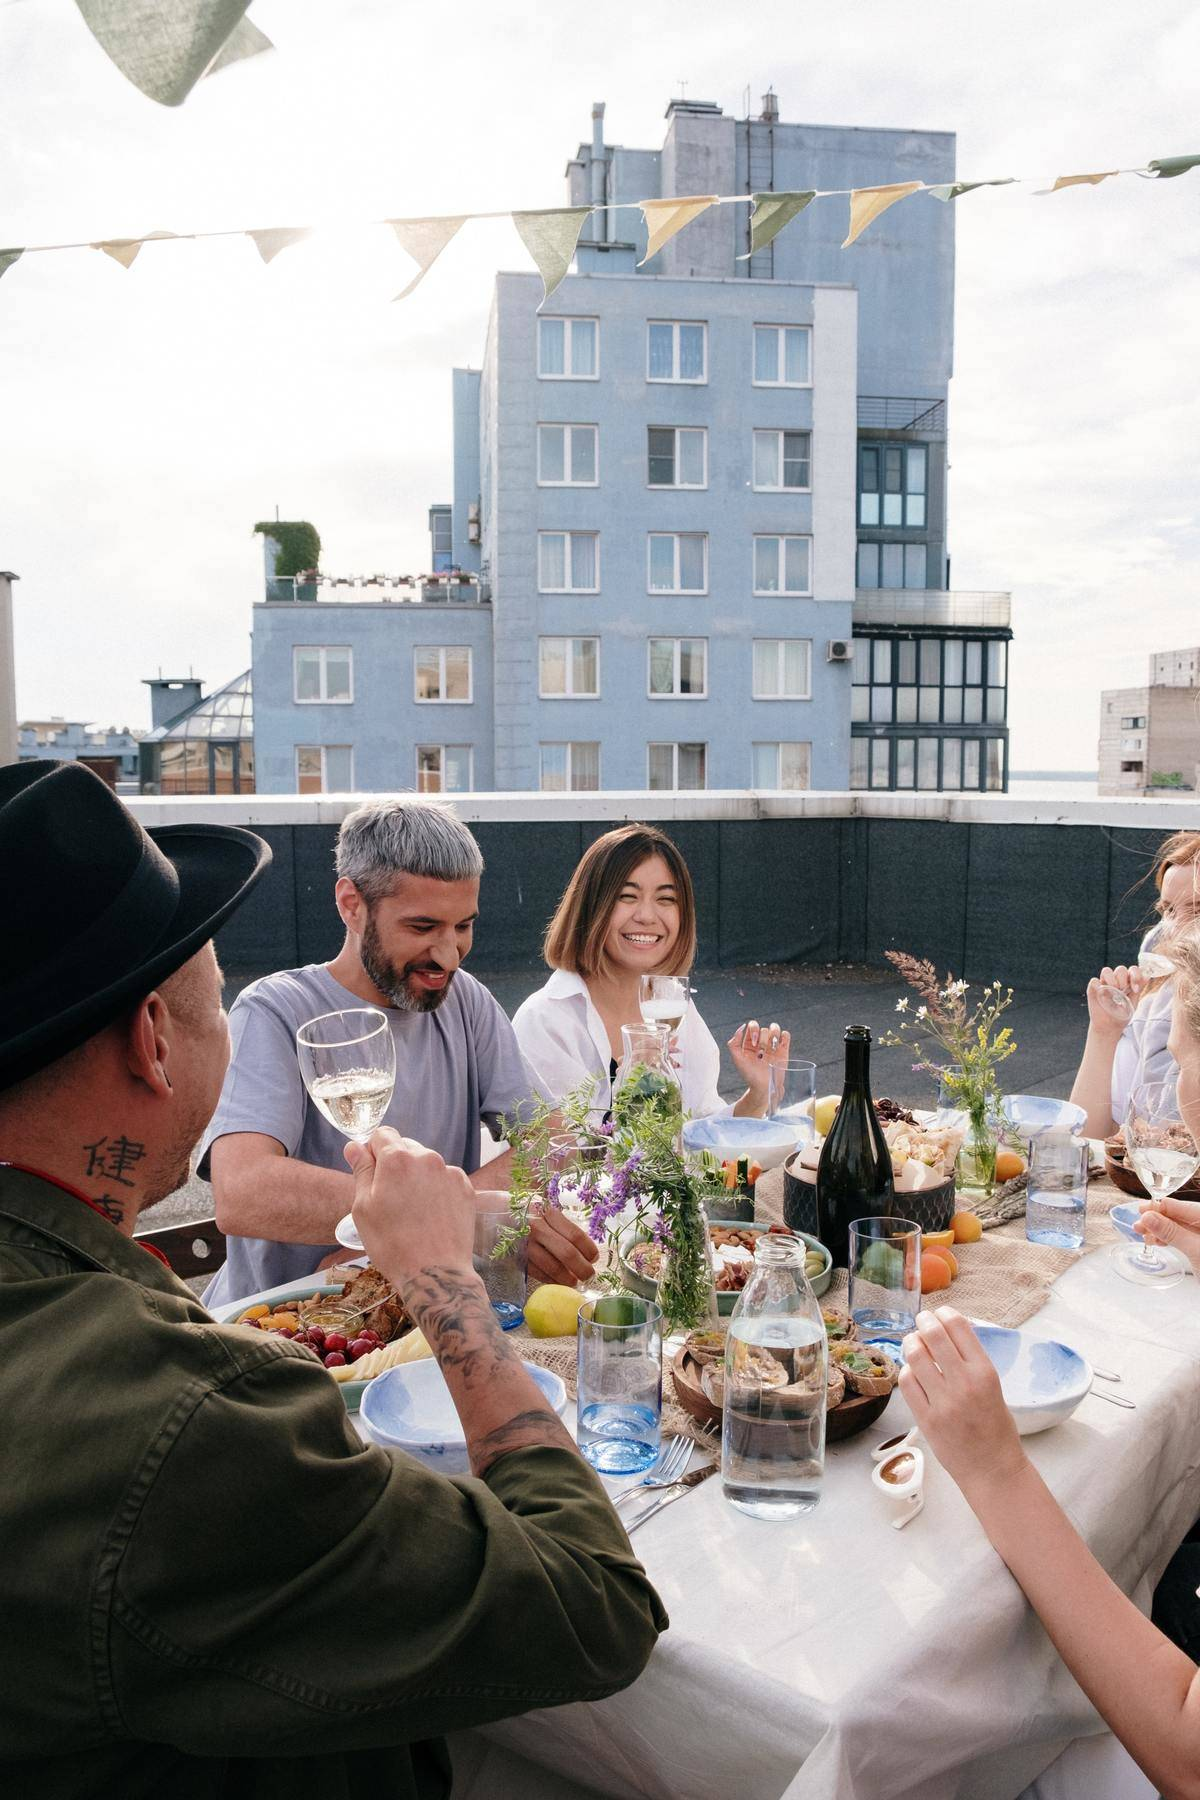 group of people having dinner party on roof